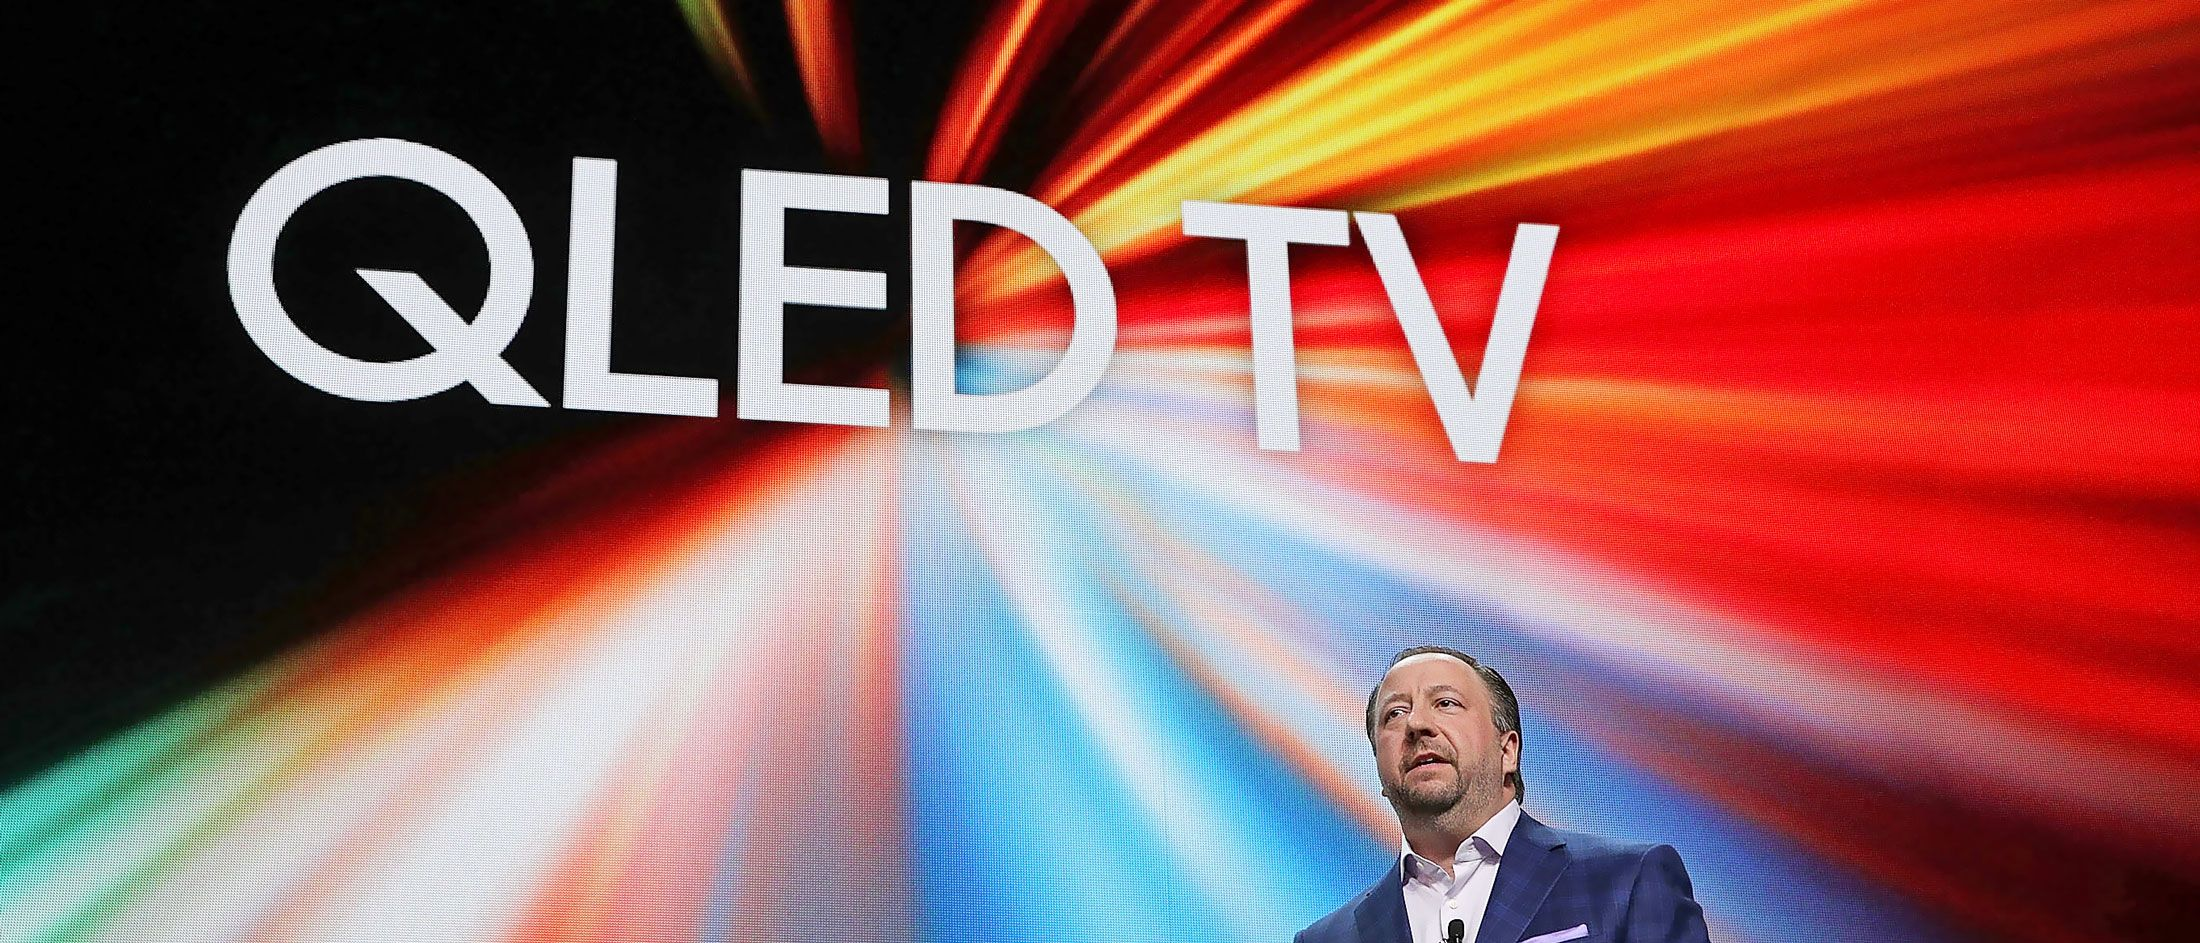 New qled tvs for 2019 samsung vizio tcl oneplus and